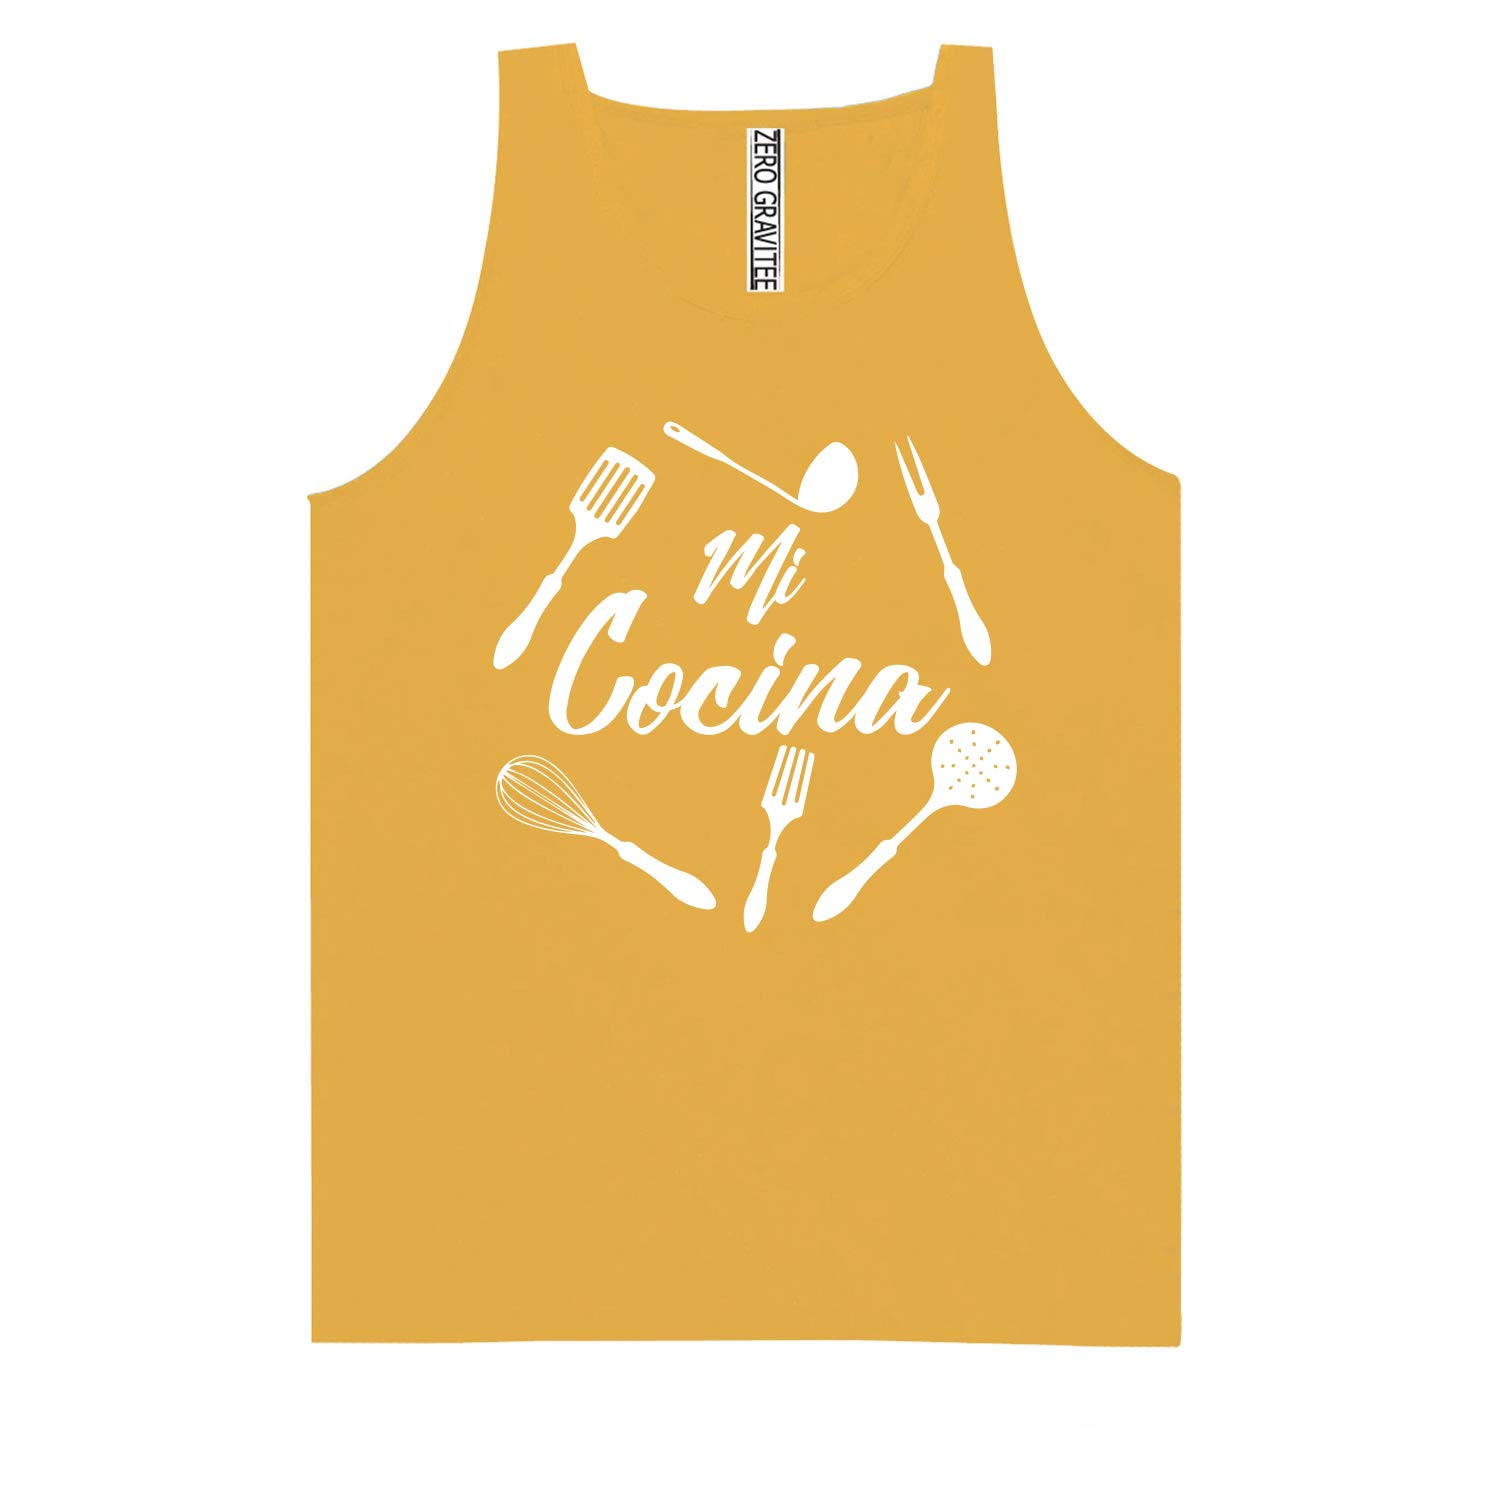 Adult Pigment Dye Tank Top MI COCINA White Text